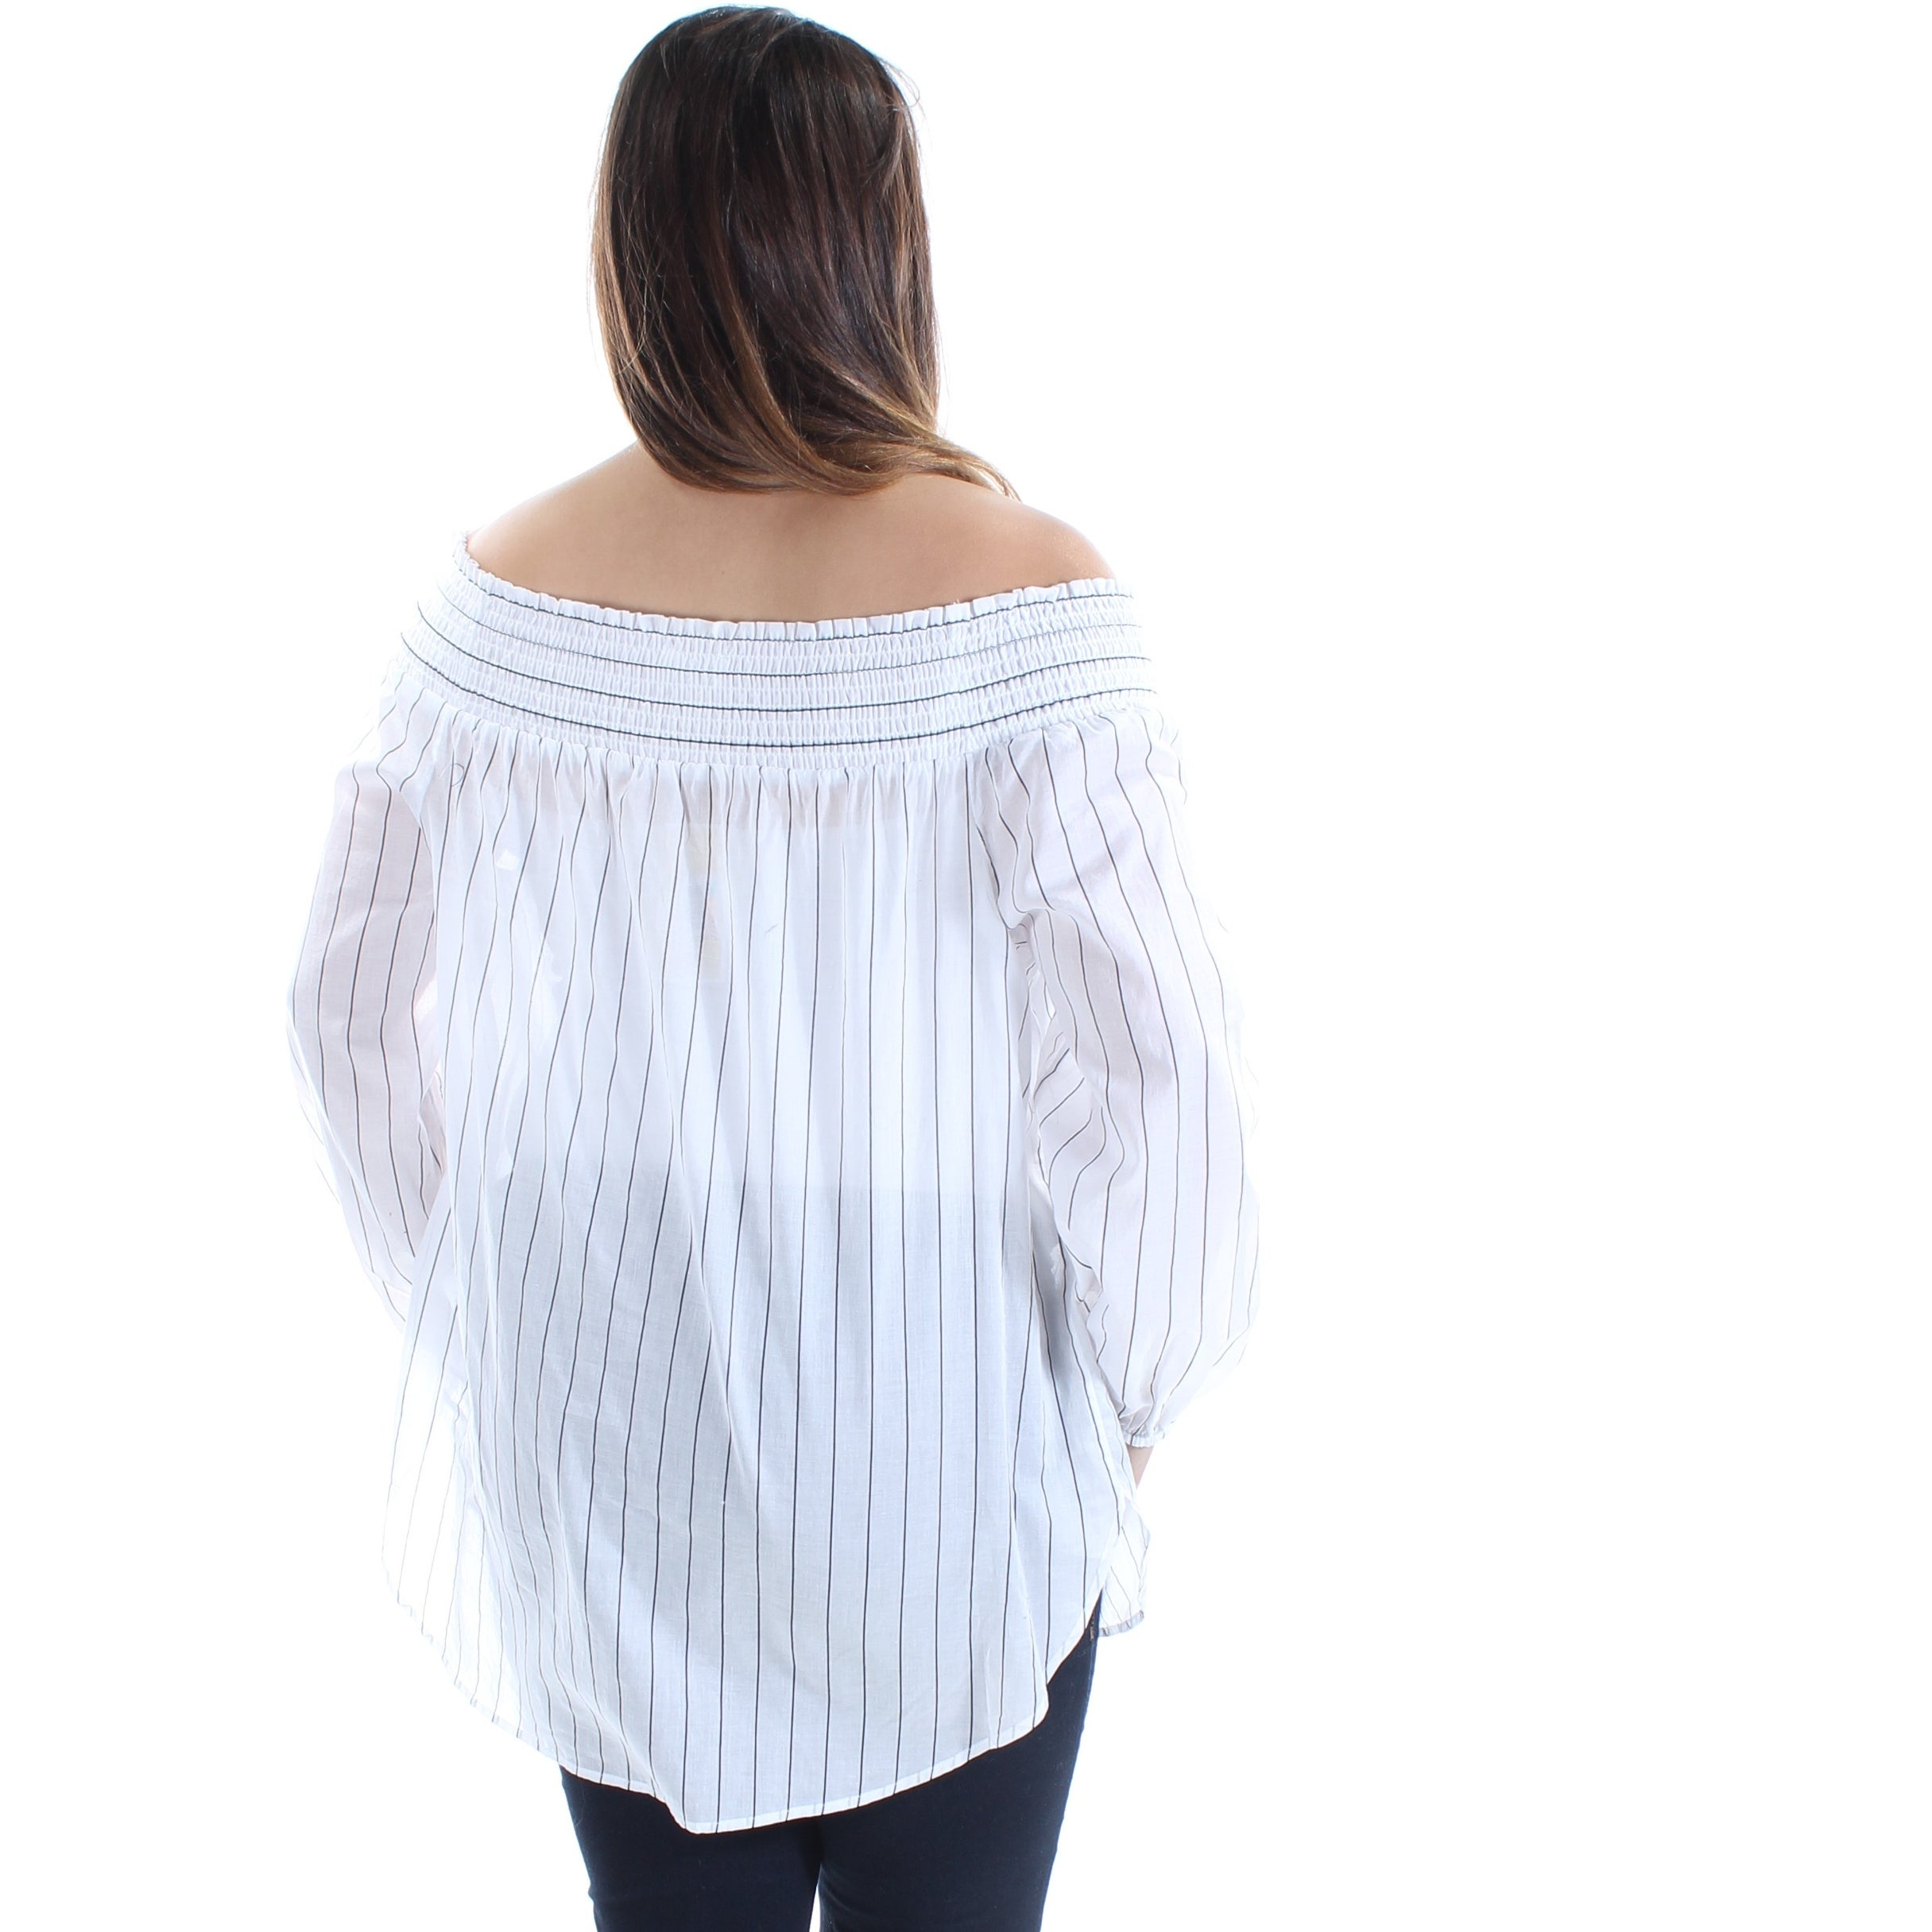 cb8817ab6d68e1 Shop MICHAEL KORS Womens White Striped Long Sleeve Off Shoulder Top Size  L  - Free Shipping On Orders Over  45 - Overstock - 22644835